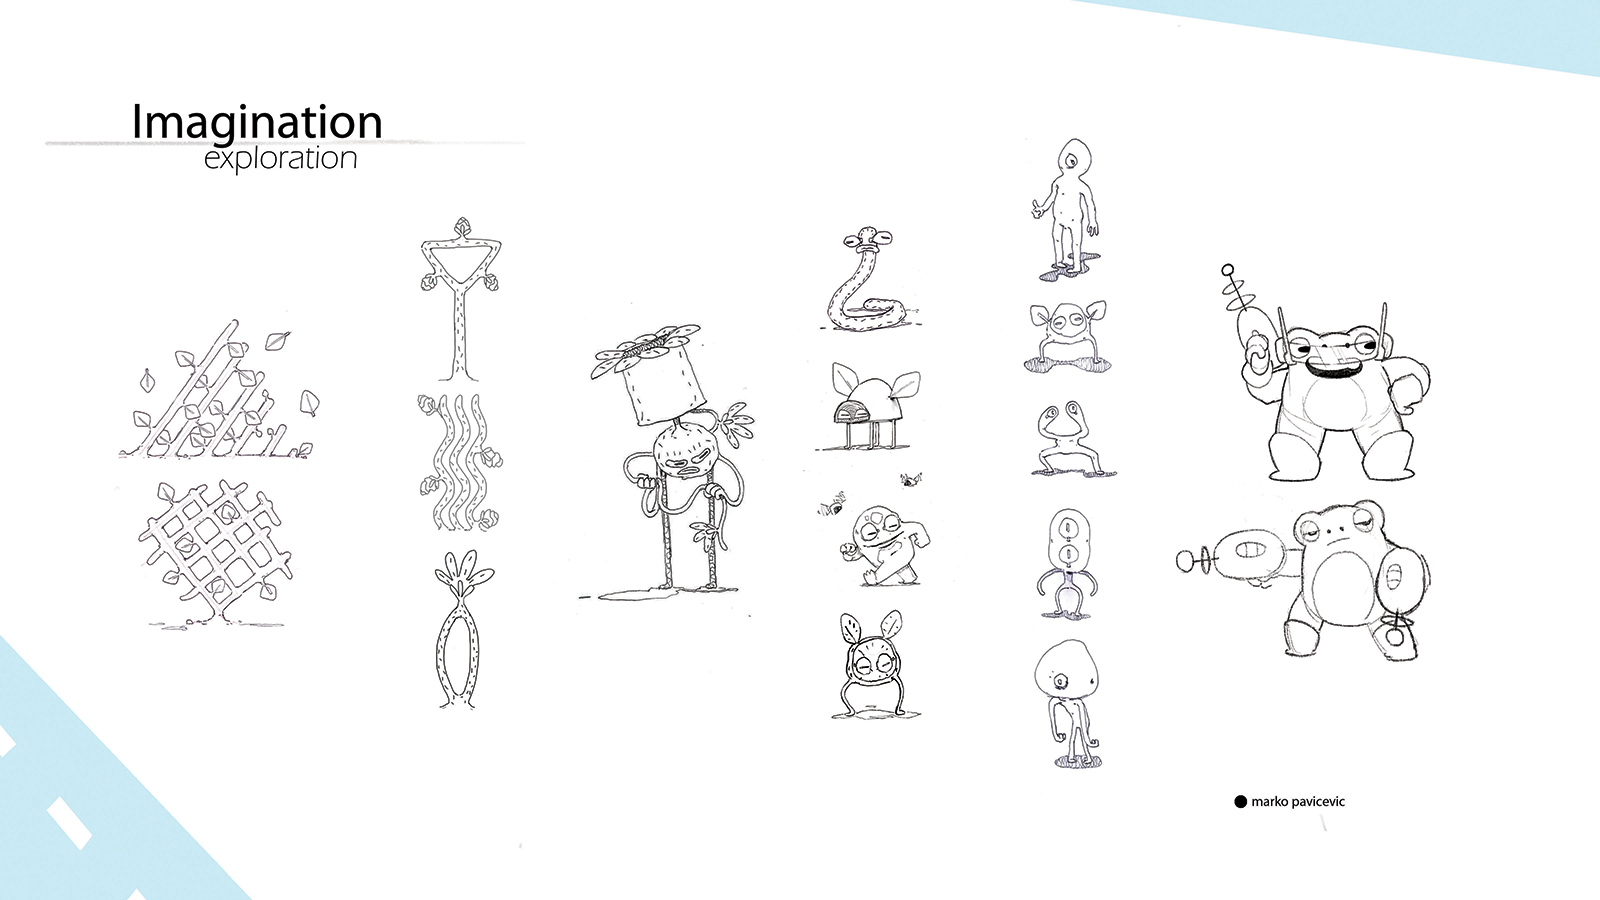 Concepts and sketches for imaginary creatures in Flap.